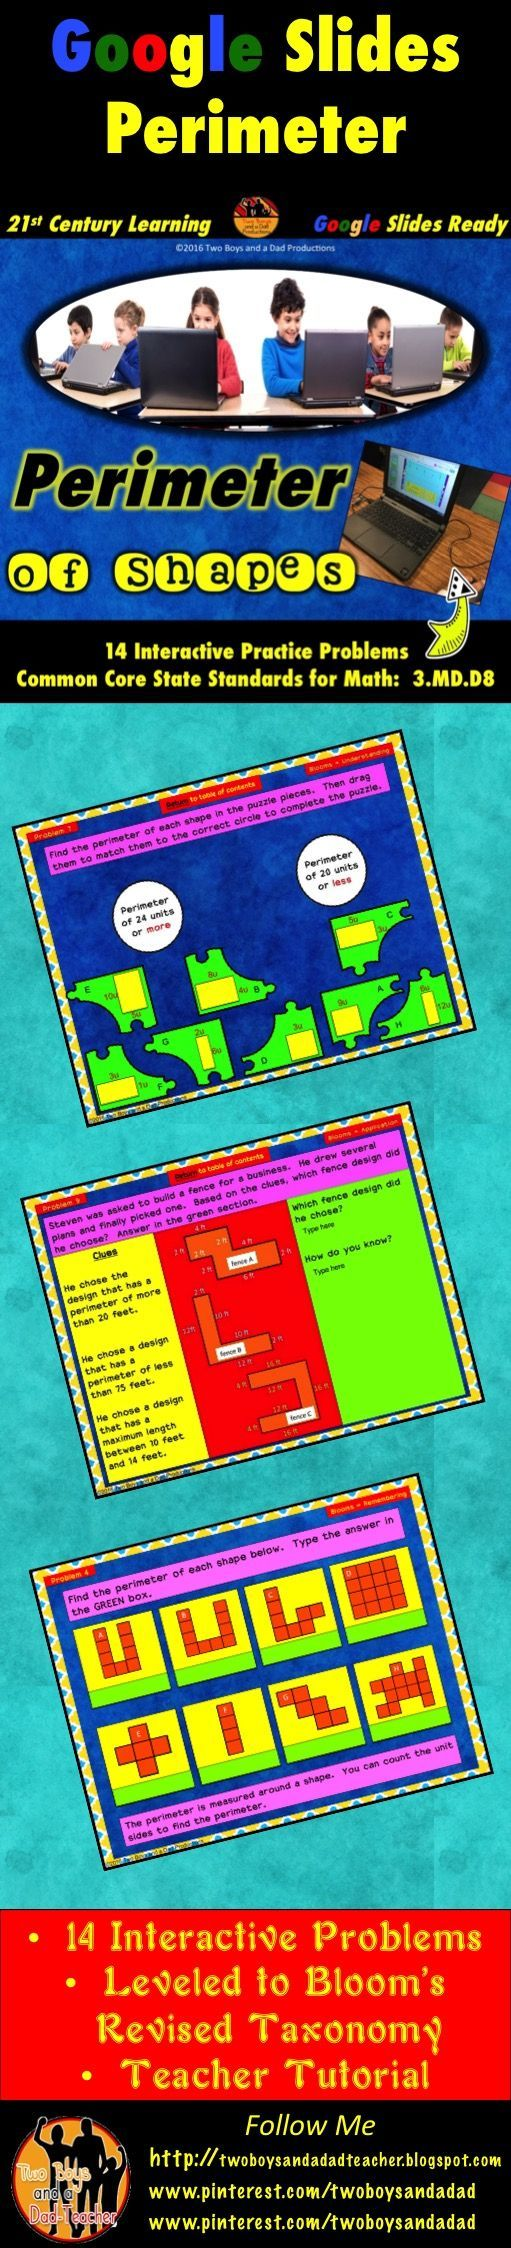 Are your students using Google Slides but you have no content?  This Google Slides product has 14 interactive perimeter problems for your students to tackle!  The slides have been created using Bloom's Revised Taxonomy.  Students get practice from all levels from remembering to creating.  Students will be able to drag objects to match, draw objects and type in text boxes to solve perimeter problems based on the CCSS for grade 3  (3.MD.D8) --and great for review in 4th grade too! Come see it!